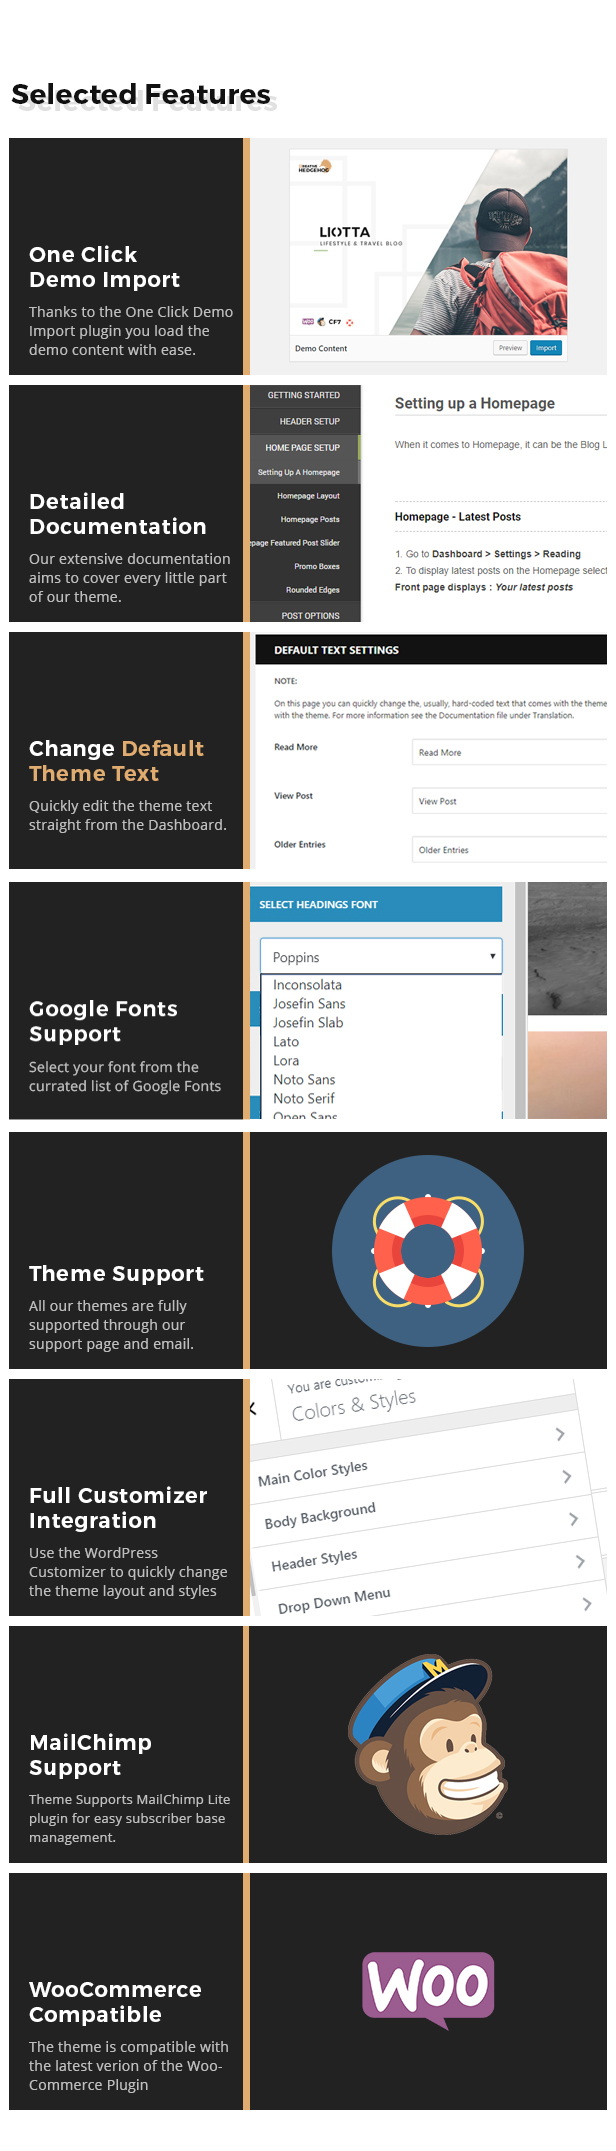 features-list-2 Liotta - a Responsive Blog Theme For WordPress theme WordPress